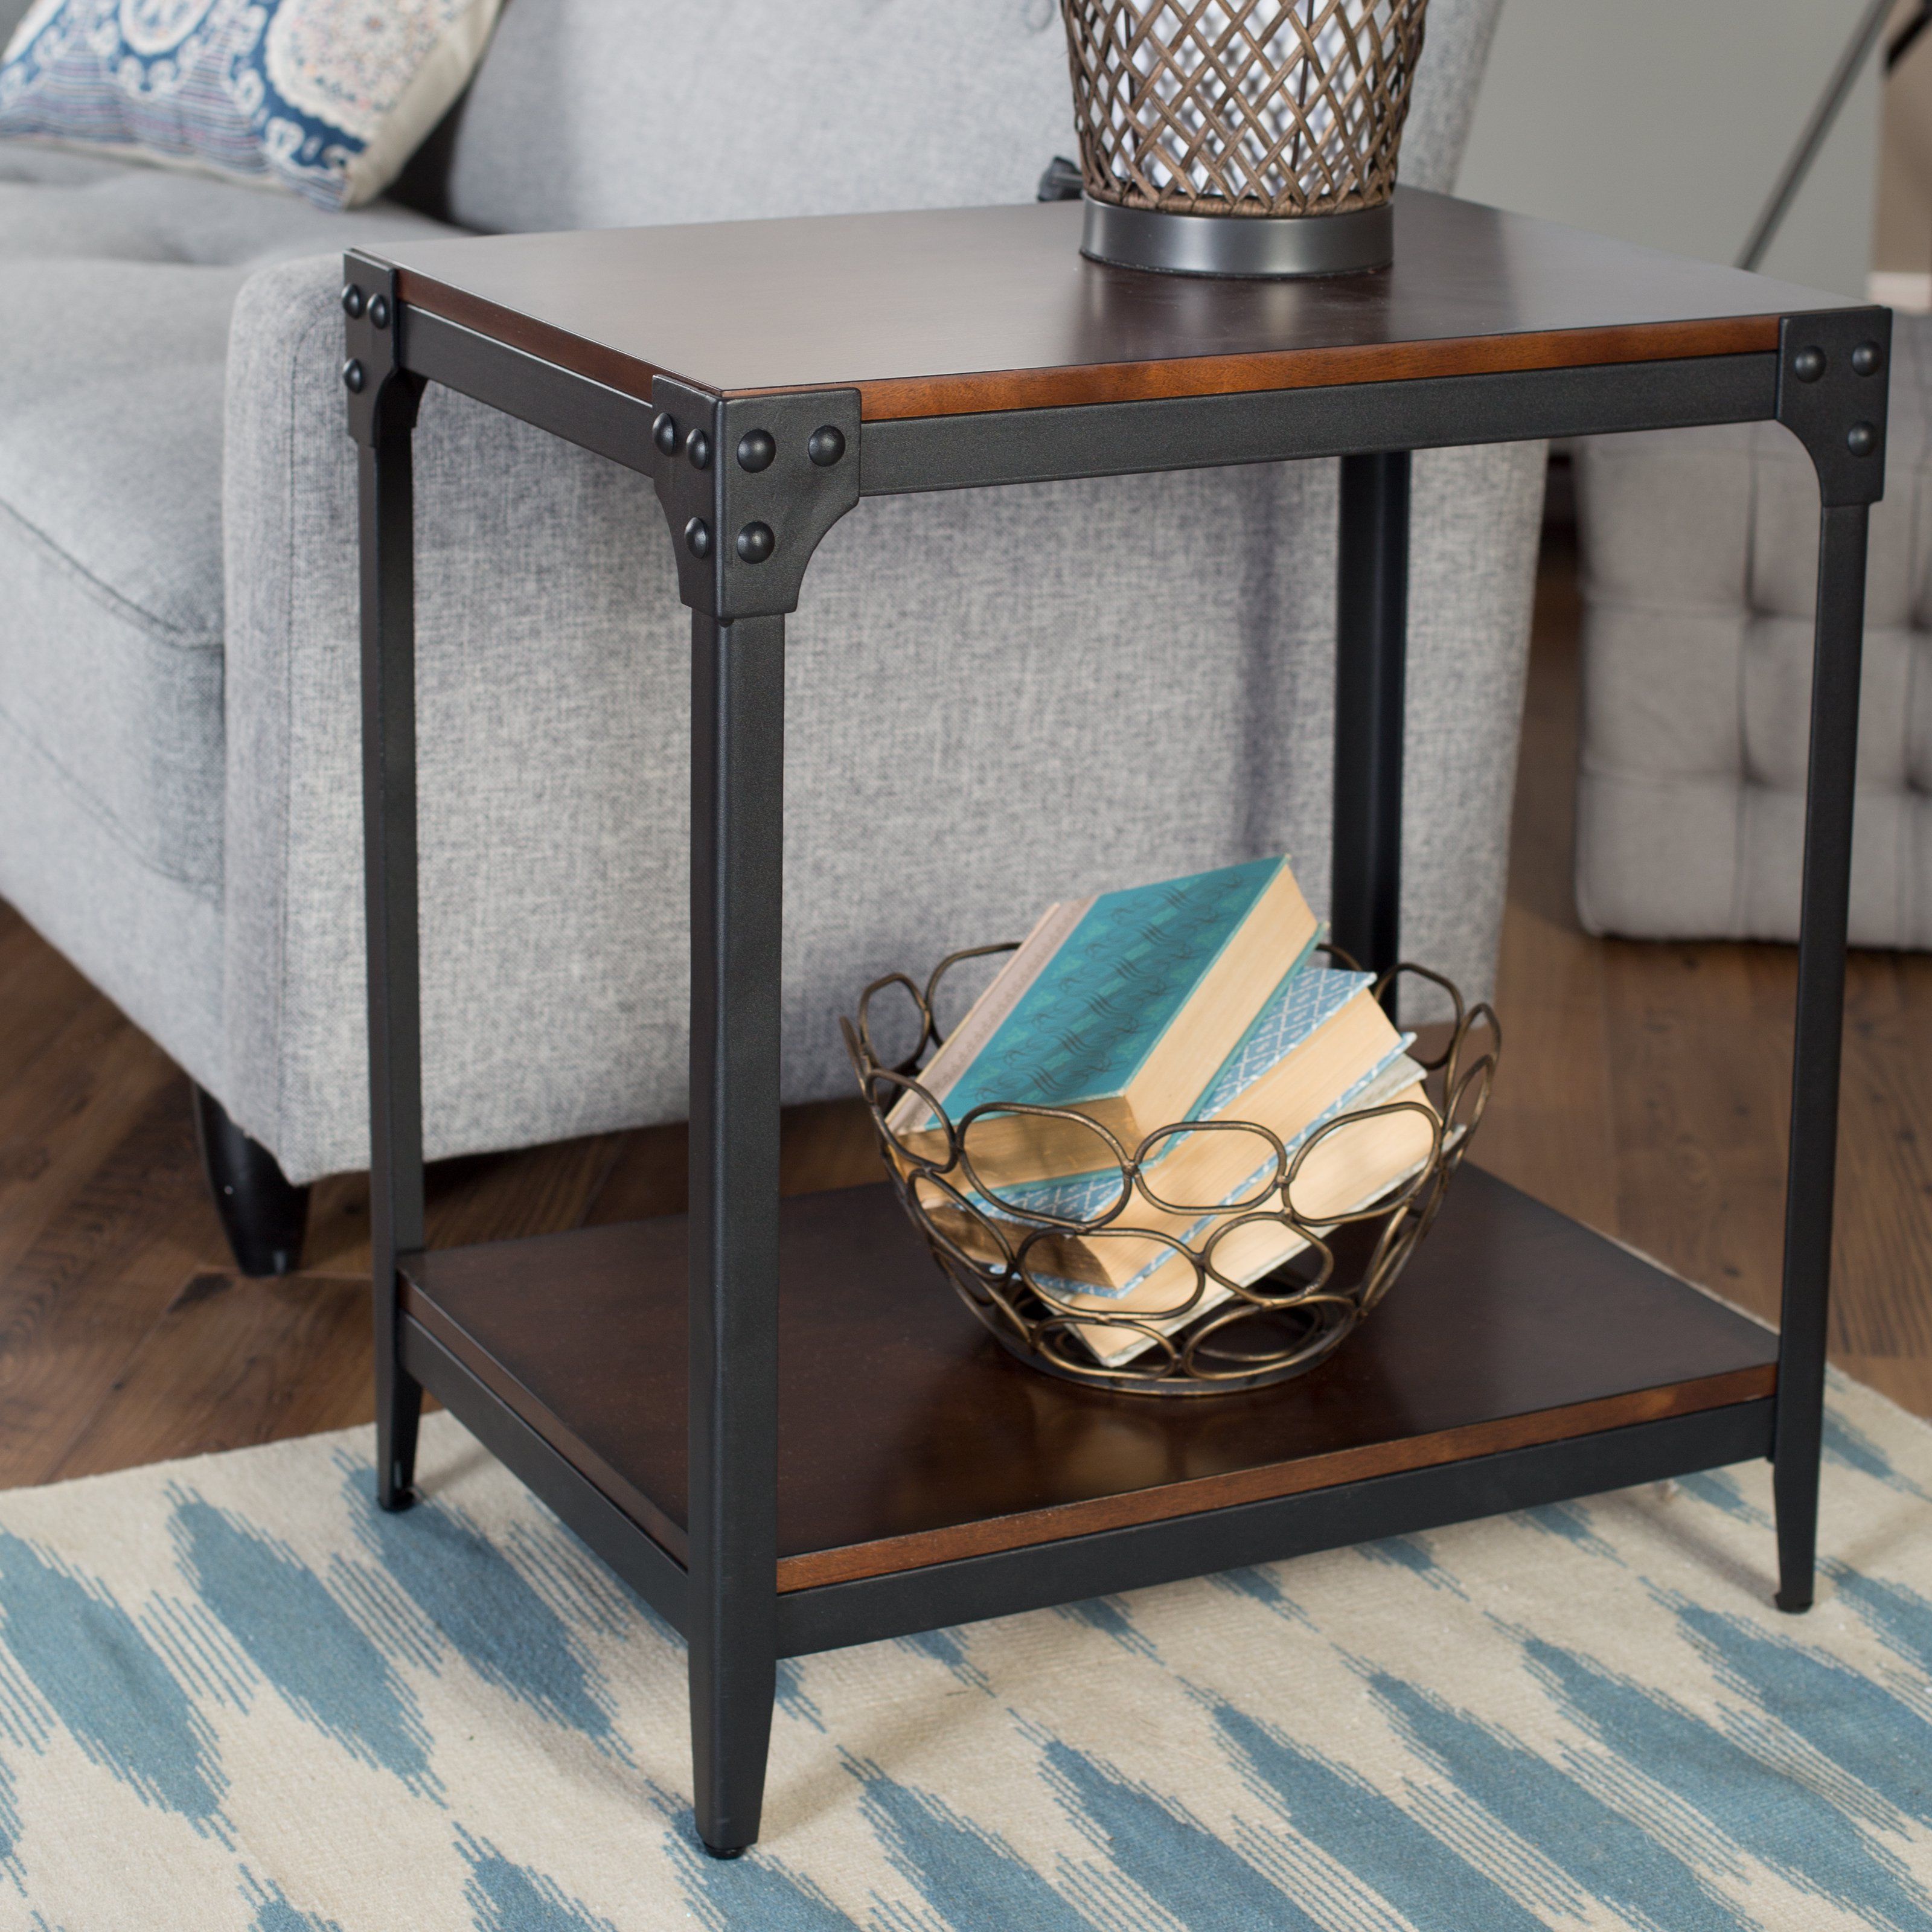 oak furniture side tables probably outrageous amazing gray wood belham living trenton industrial end table espresso funky chairs glass nesting coffee jcpenney mattress small with